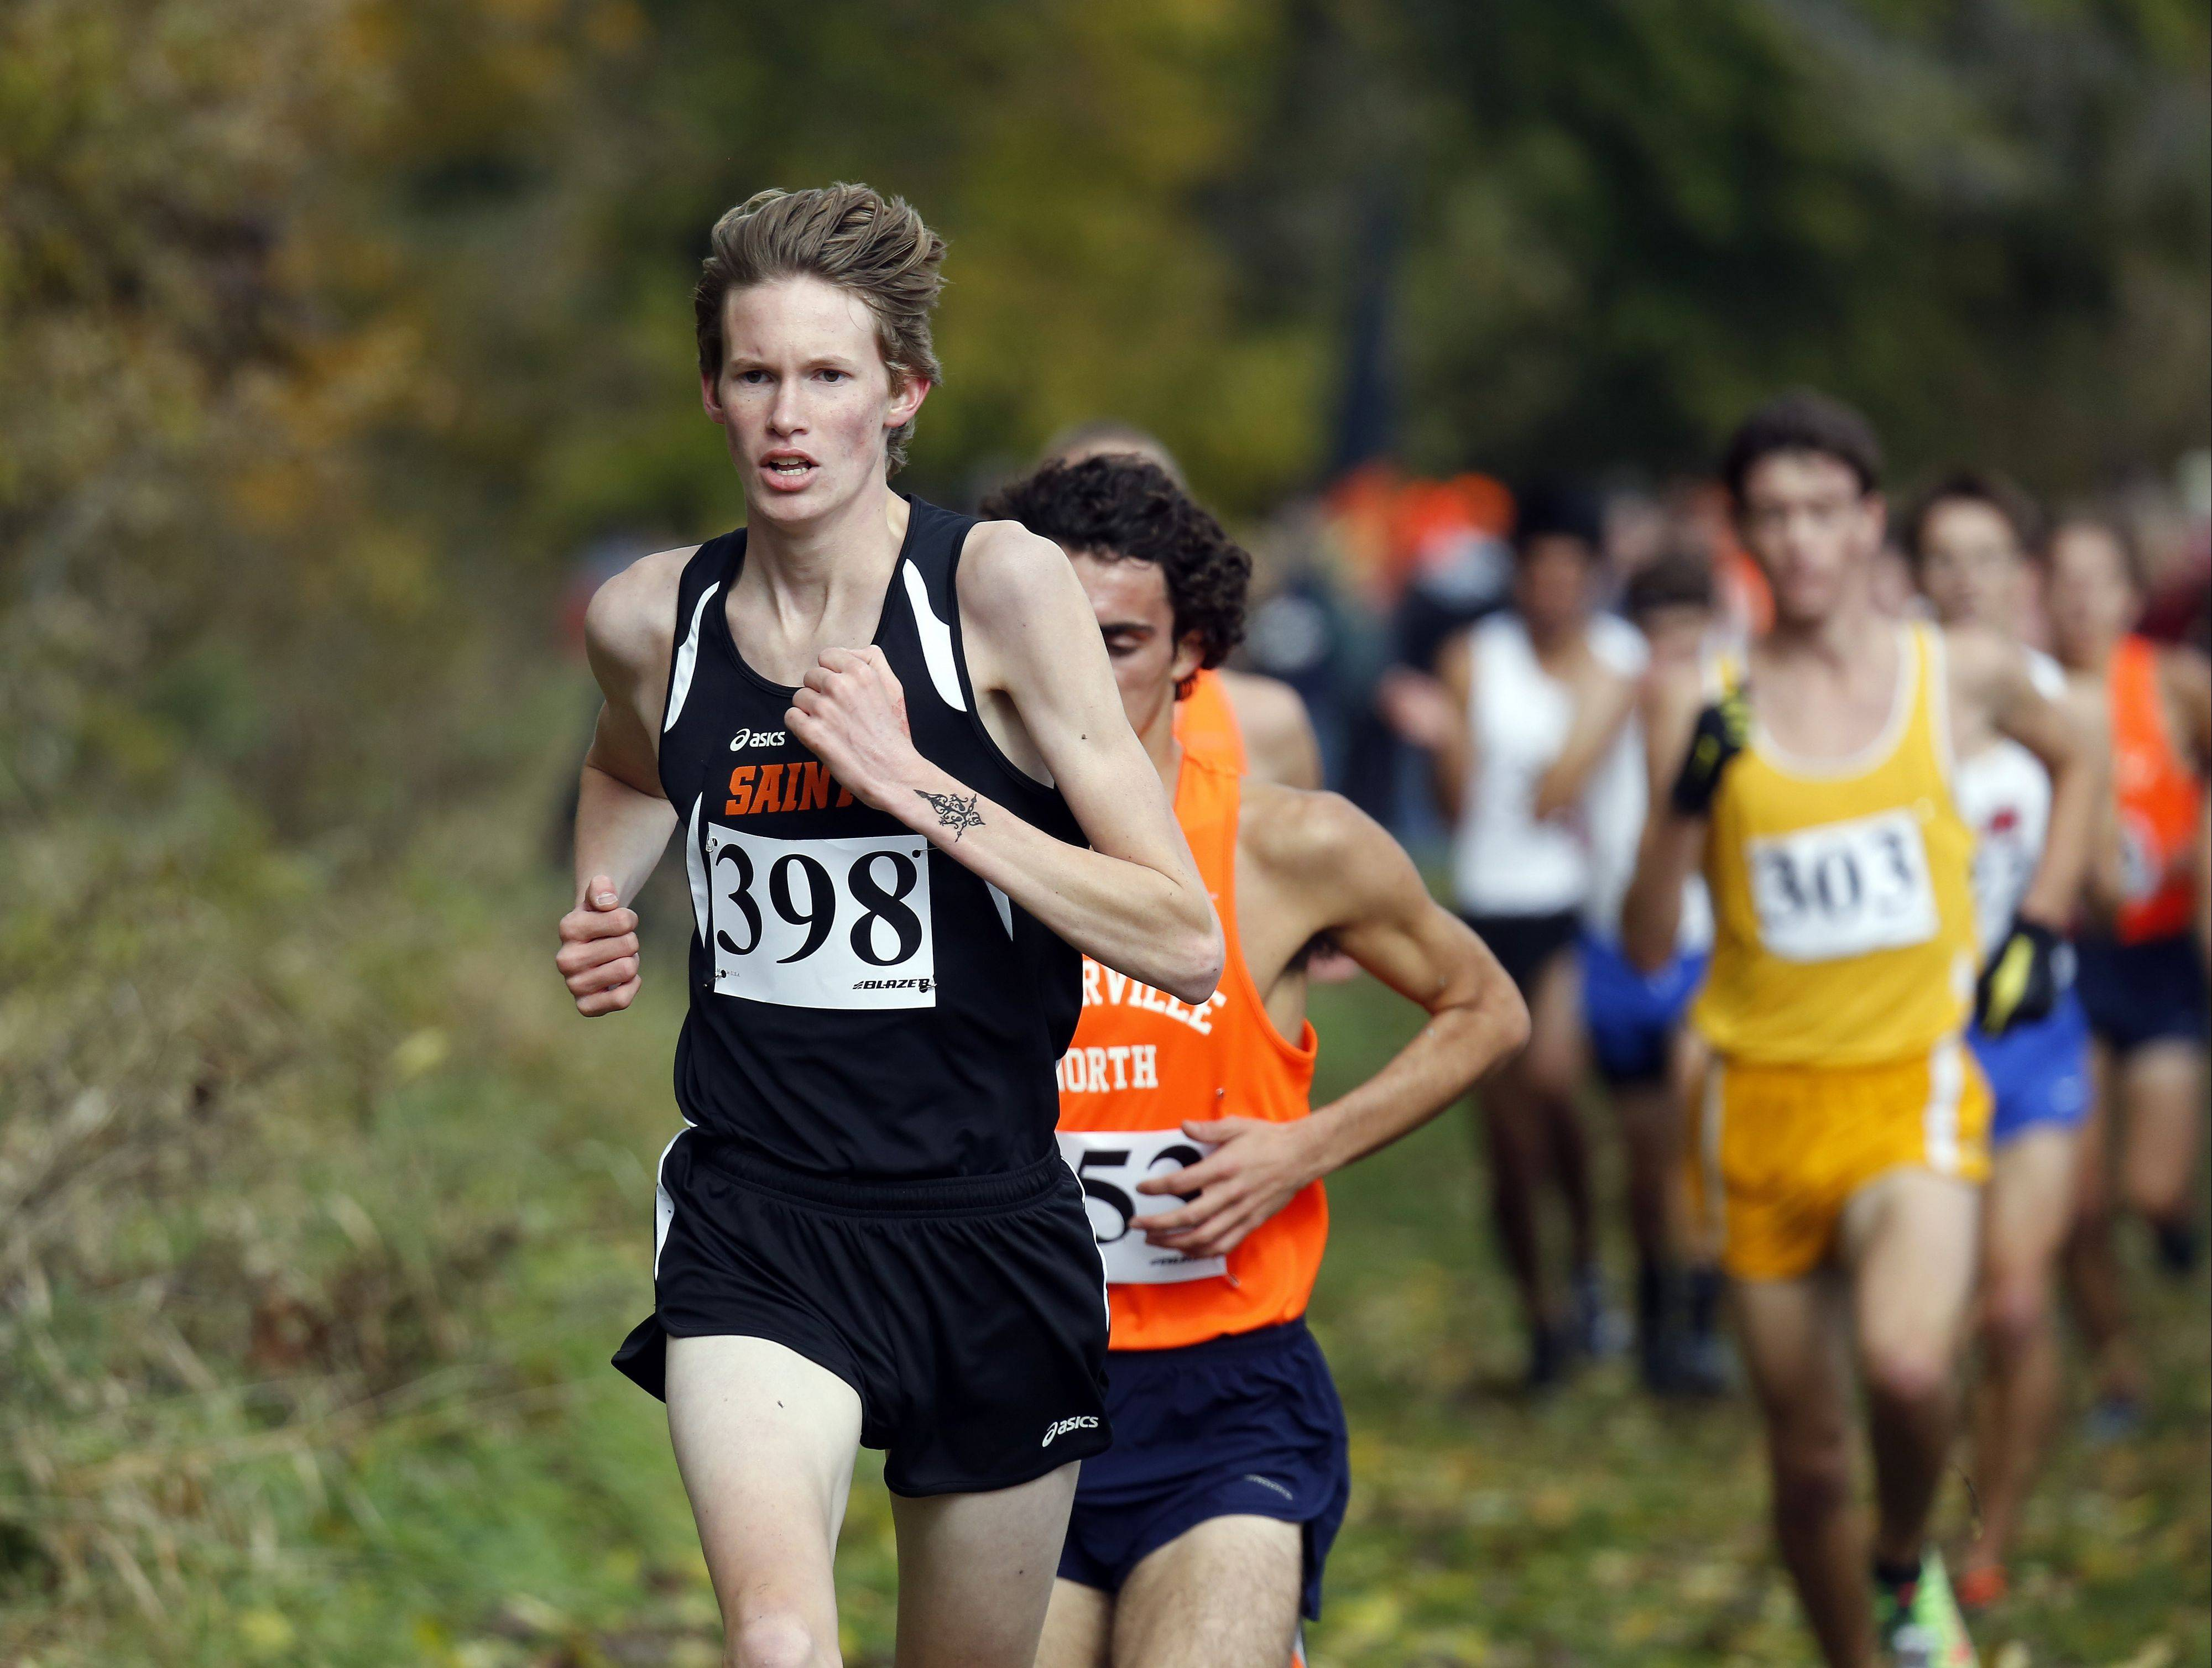 St. Charles East heads to ninth place during the Waubonsie Valley boys cross country Sectional in Aurora.